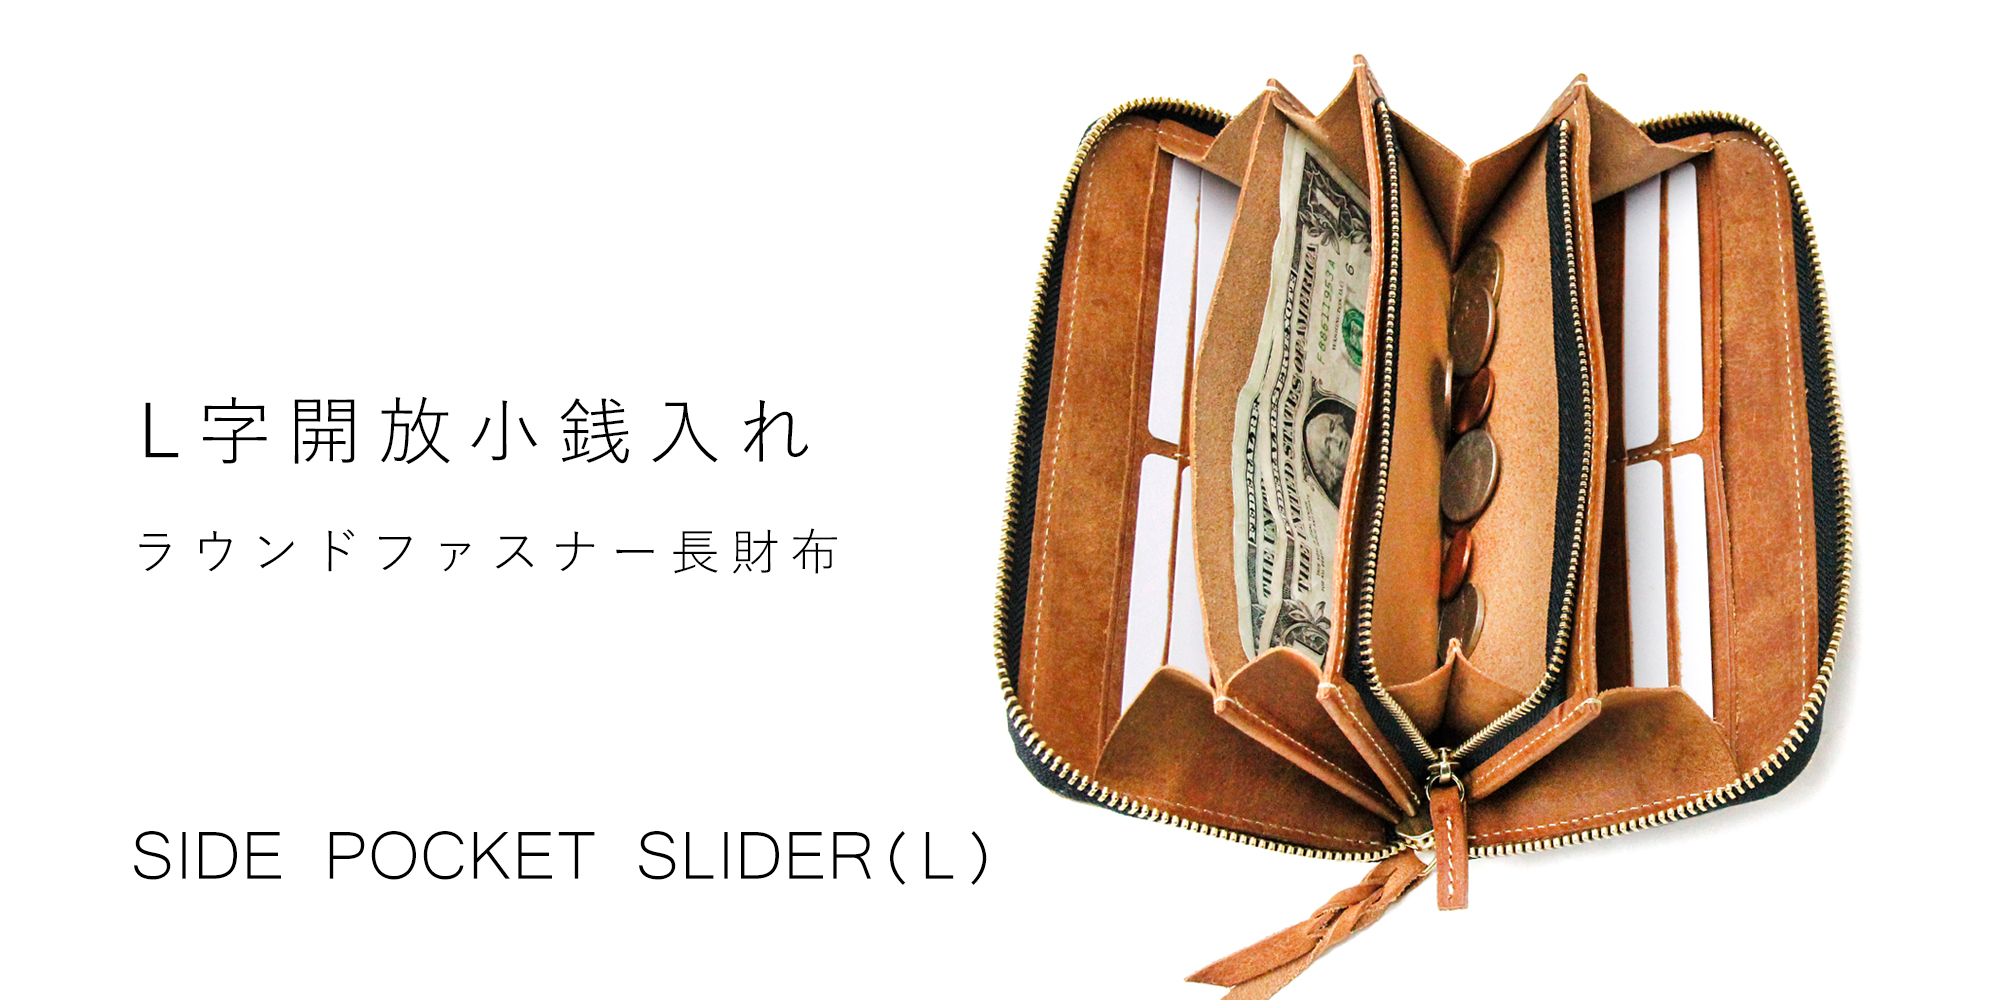 Pick Up / Ryu SIDE POCKET SLIDER(L)WALLET